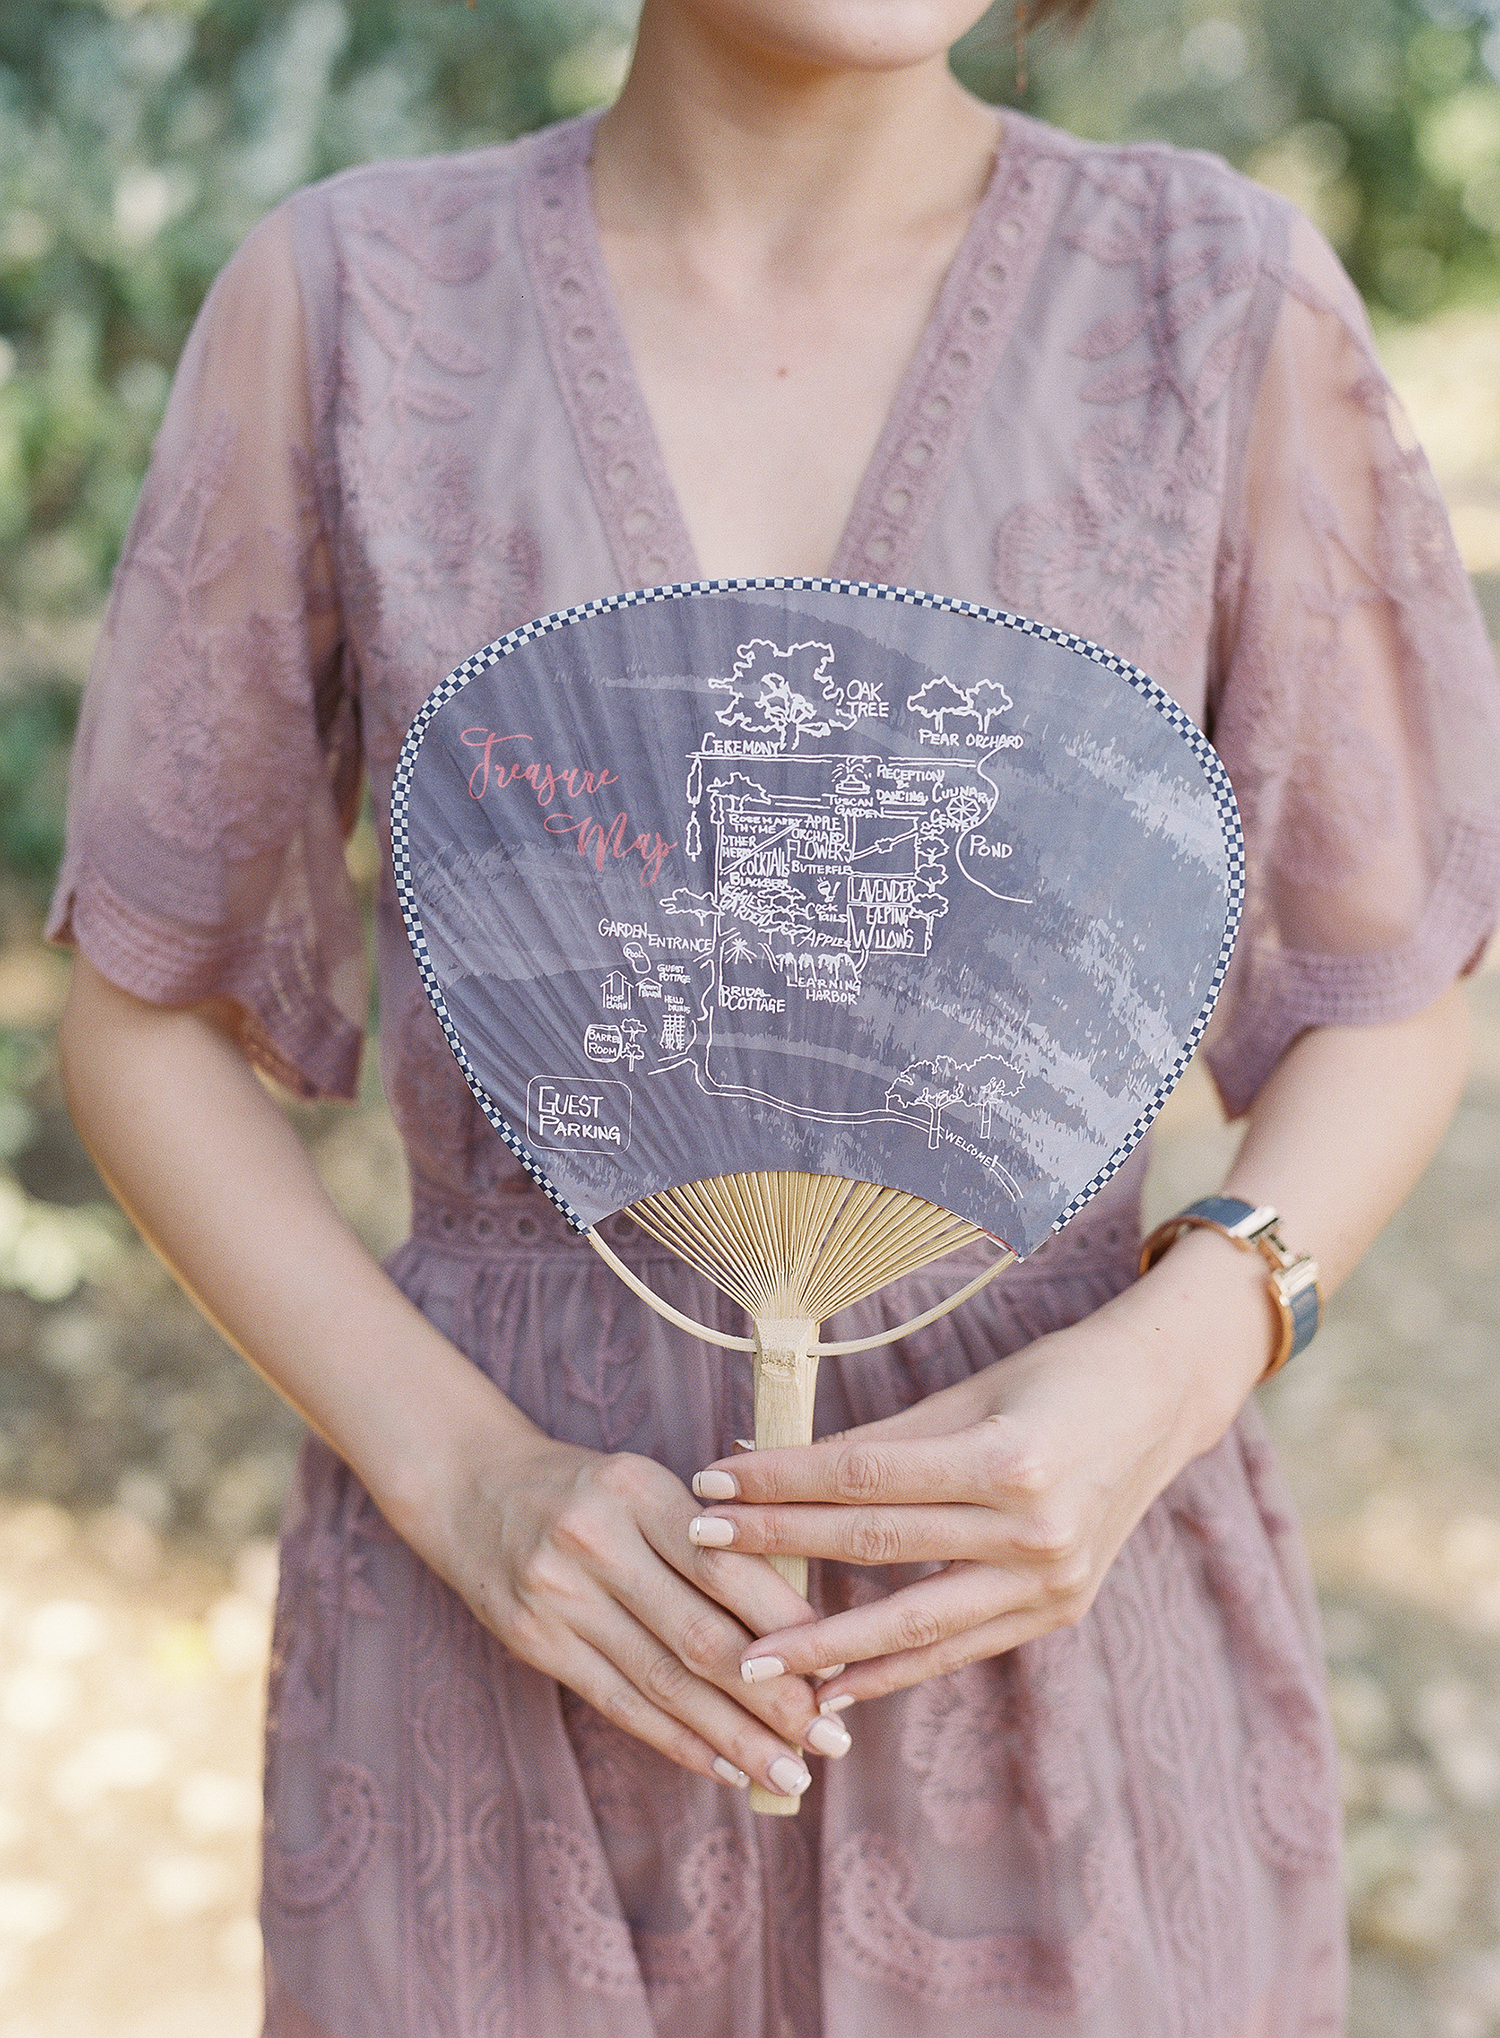 22 Wedding Ceremony Program Fans to Help Keep Guests Cool